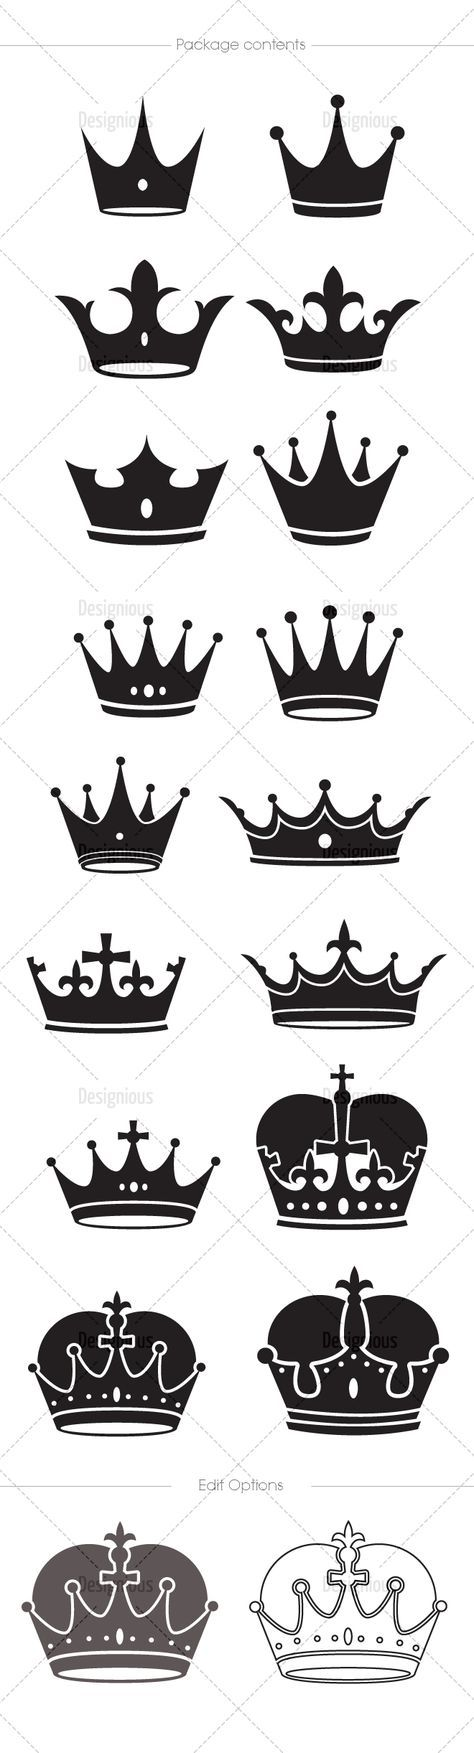 Crowns Vector Pack 5 | Designious